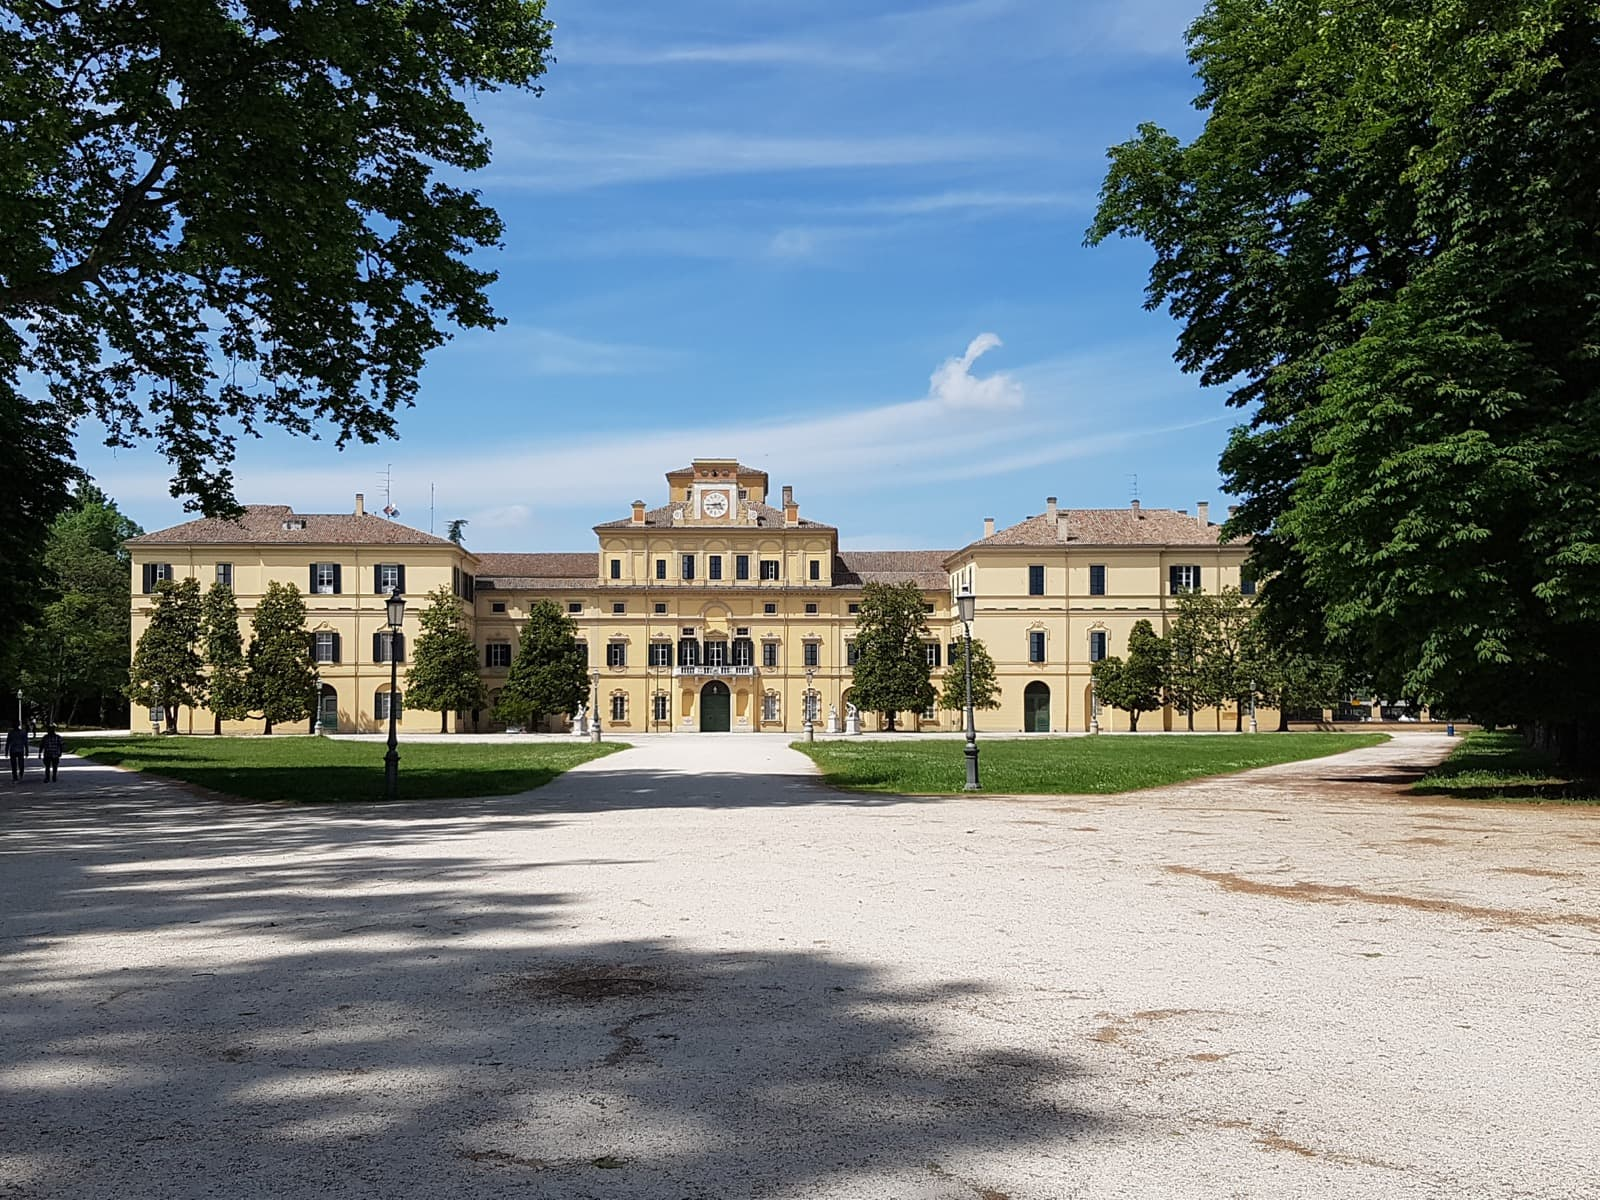 72 Hours in Parma